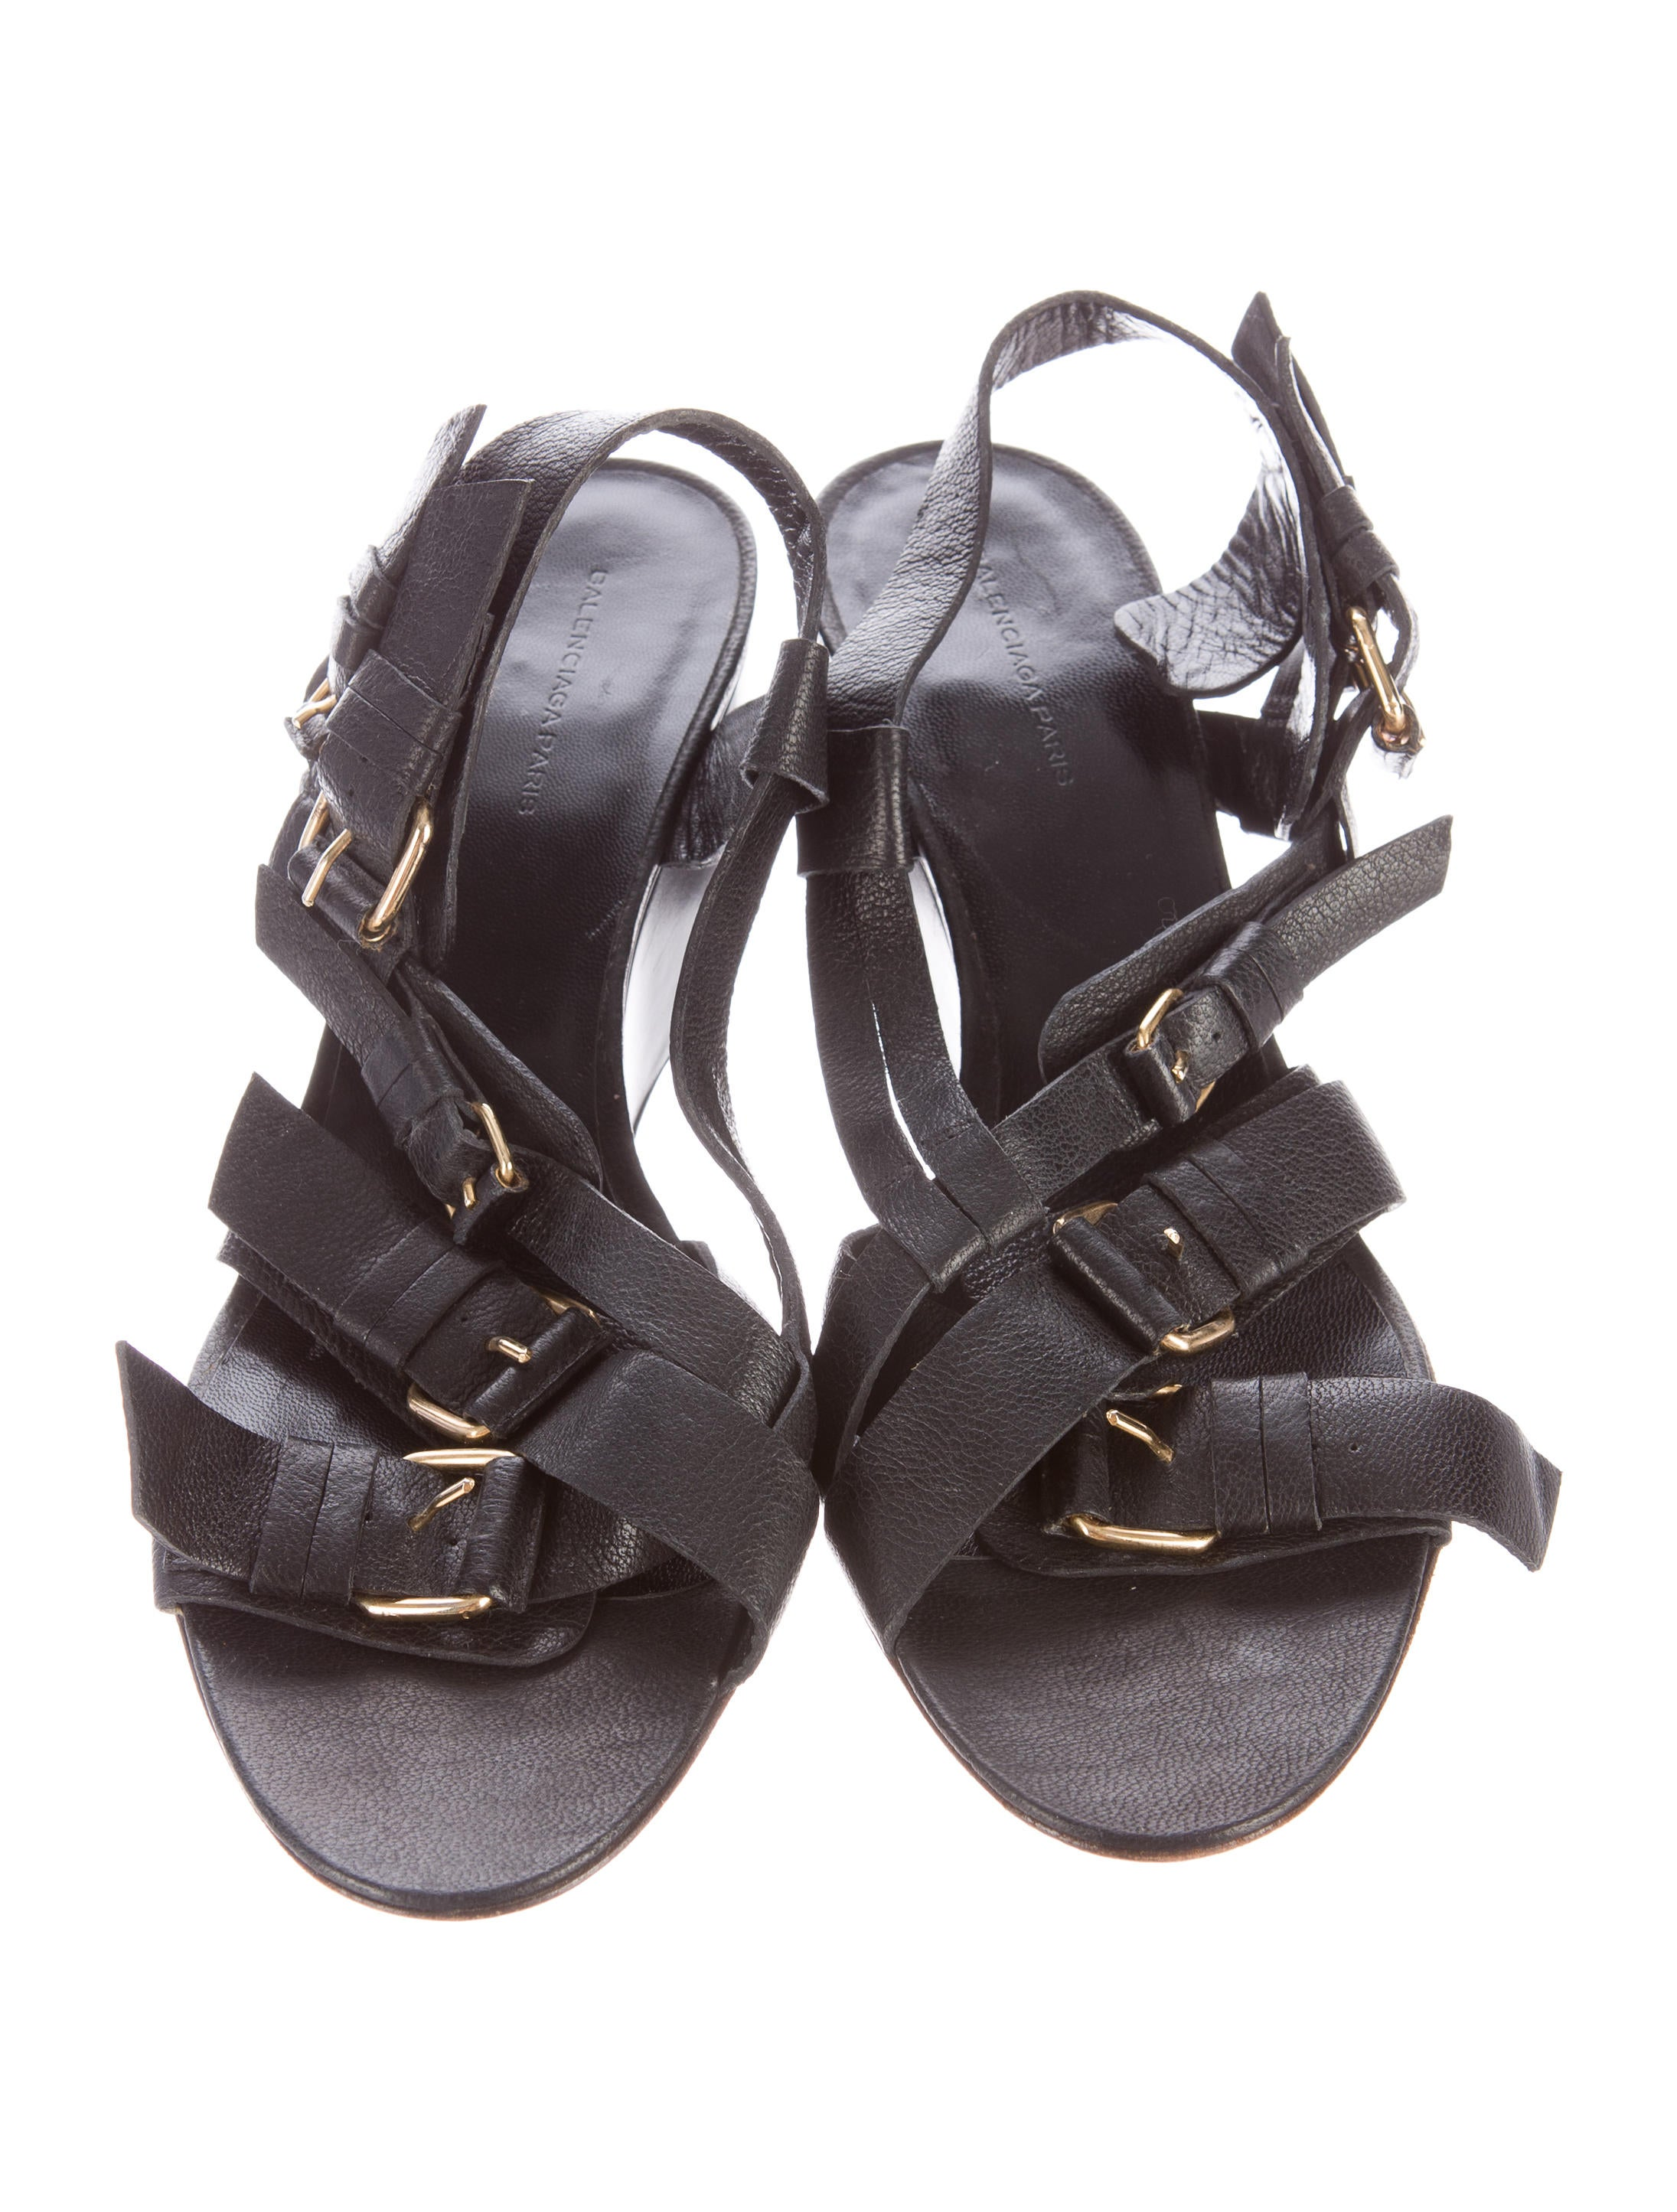 Balenciaga Multistrap Buckle Wedge Sandals Shoes  : BAL405623enlarged from www.therealreal.com size 2191 x 2890 jpeg 509kB